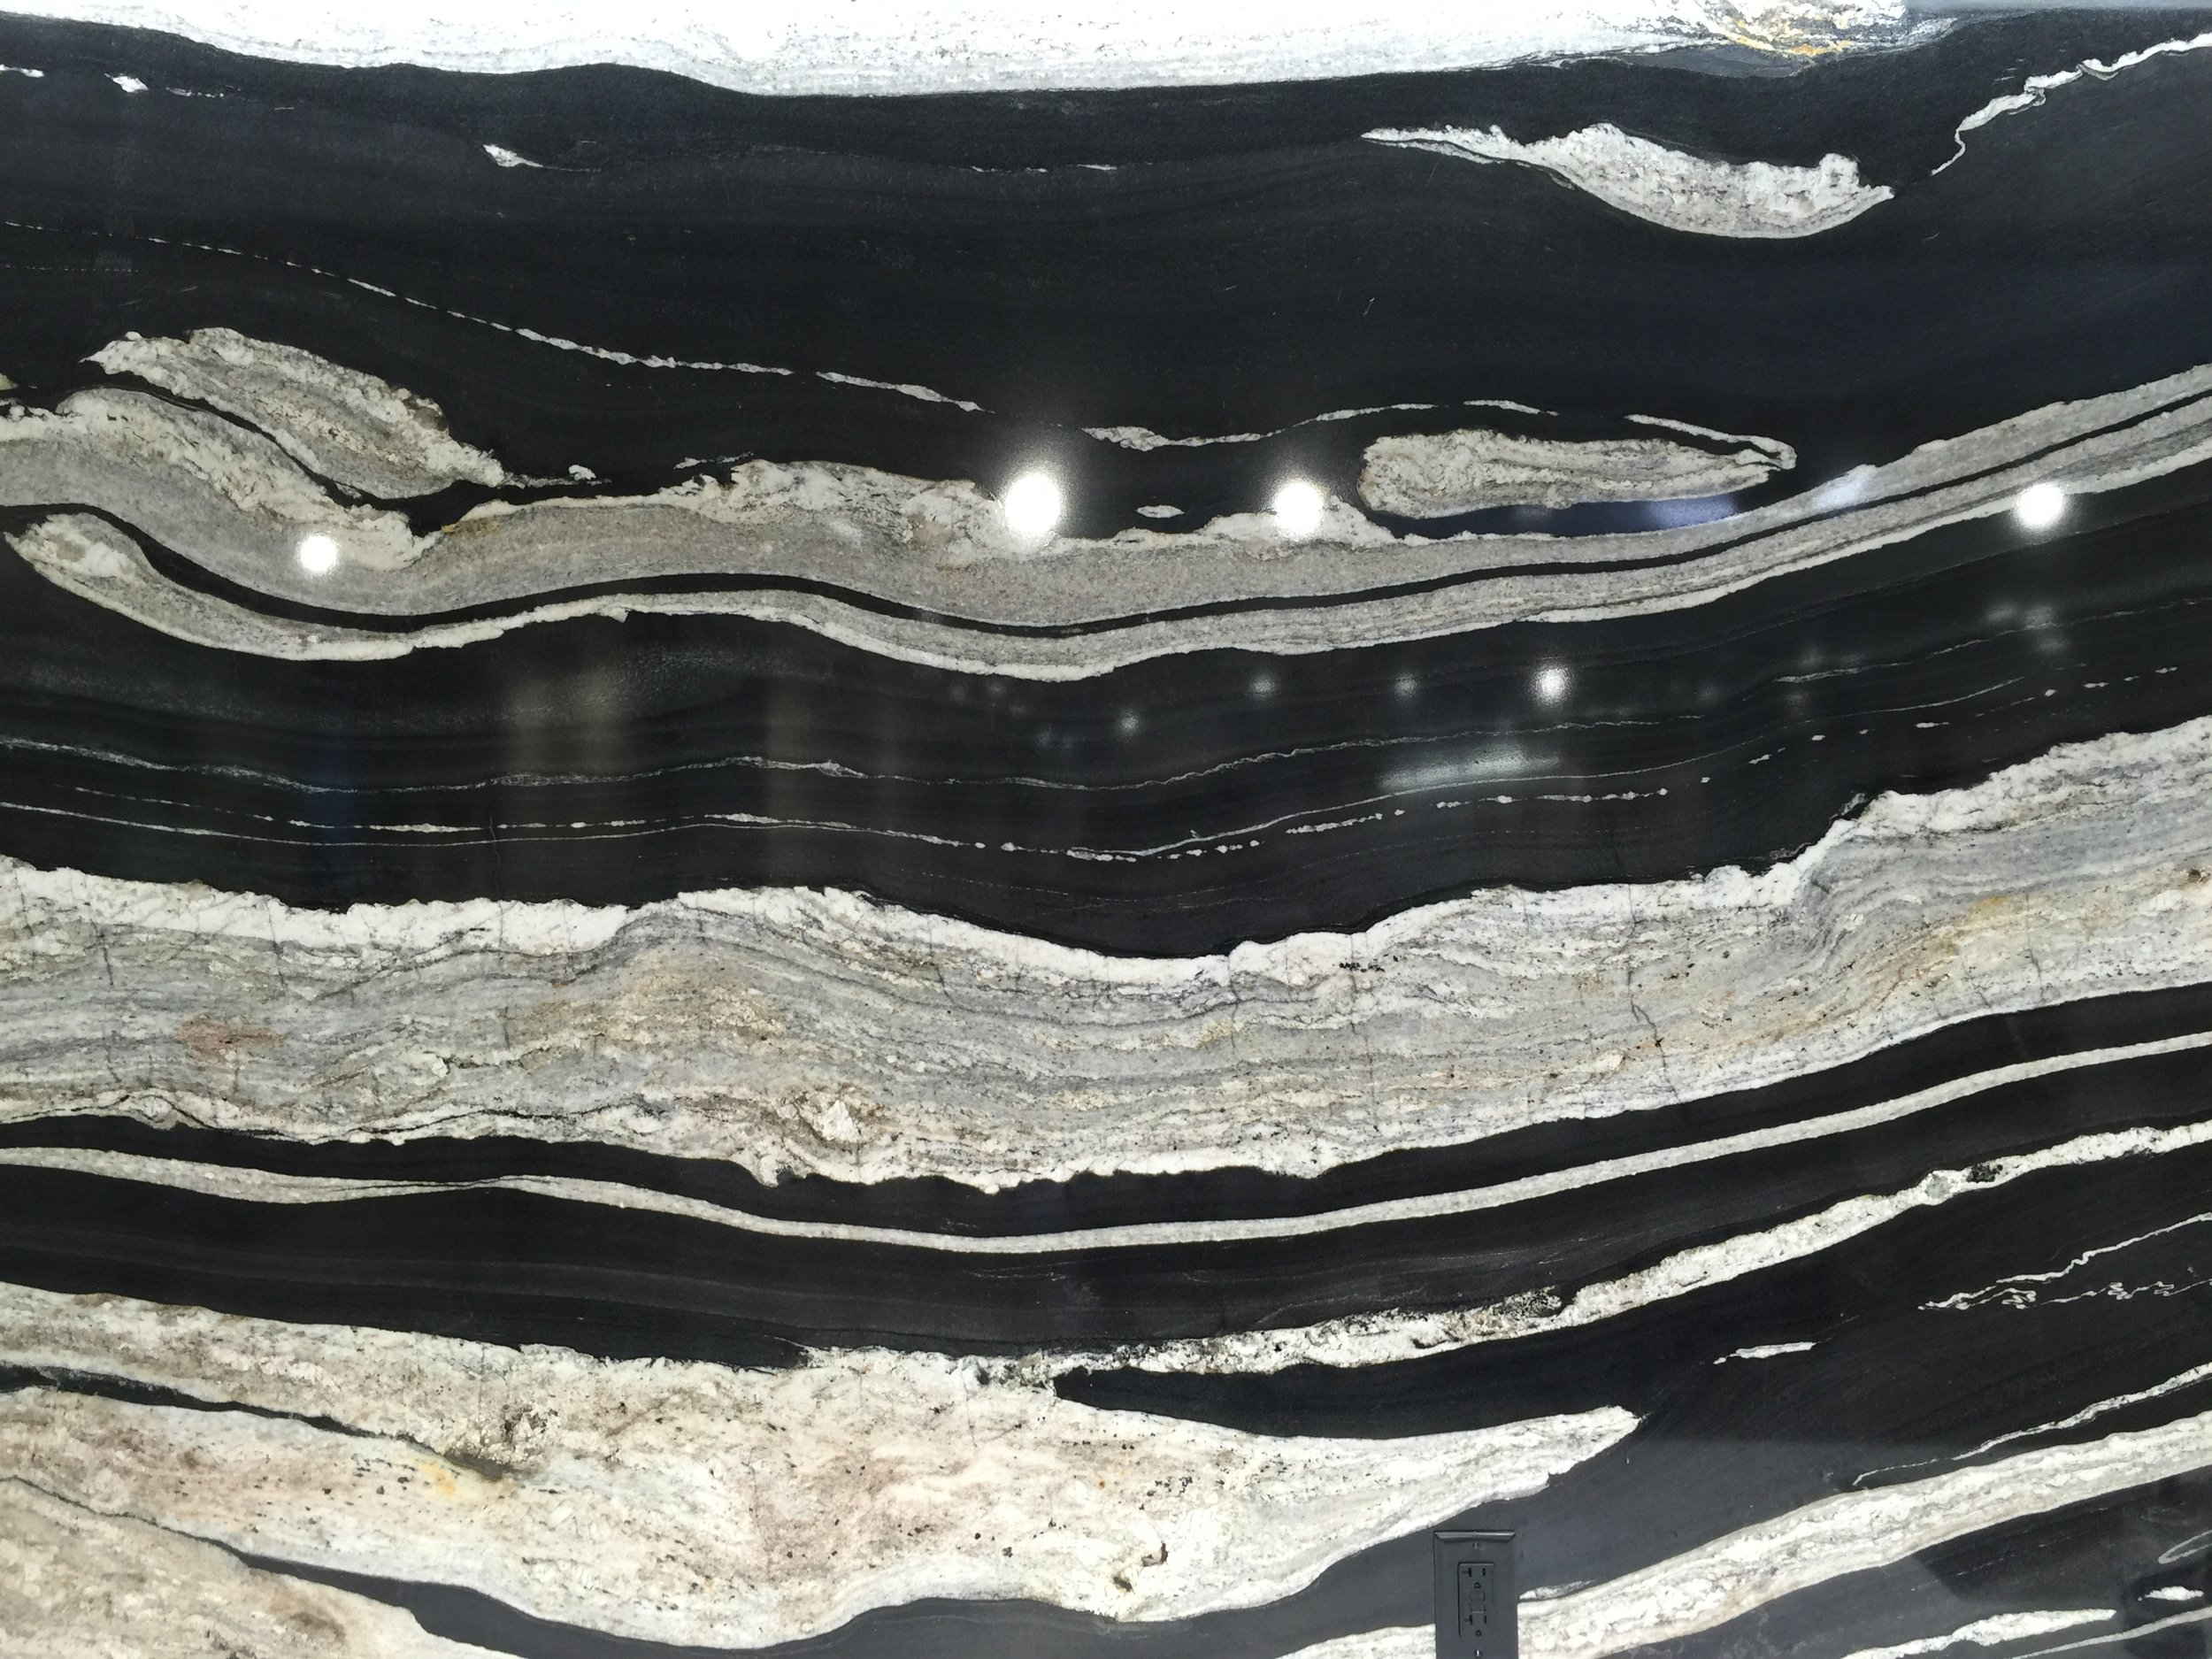 Daltile has some amazing slabs that can create art walls in your home.